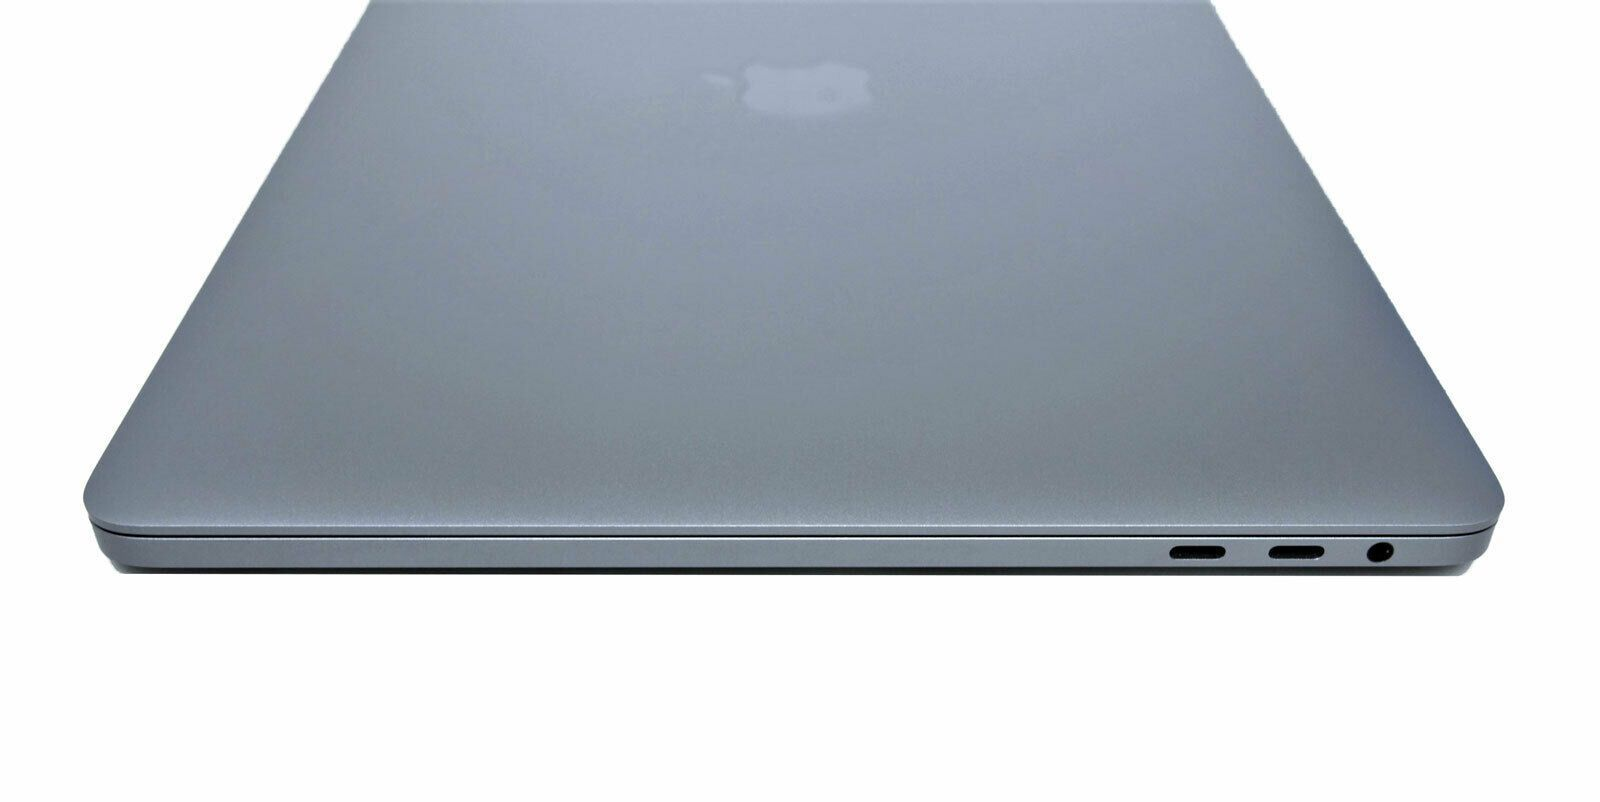 "Apple MacBook Pro 2018 13.3"" 256 GB, Intel Core i5 8th Gen. 2.3GHz, 8GB RAM"